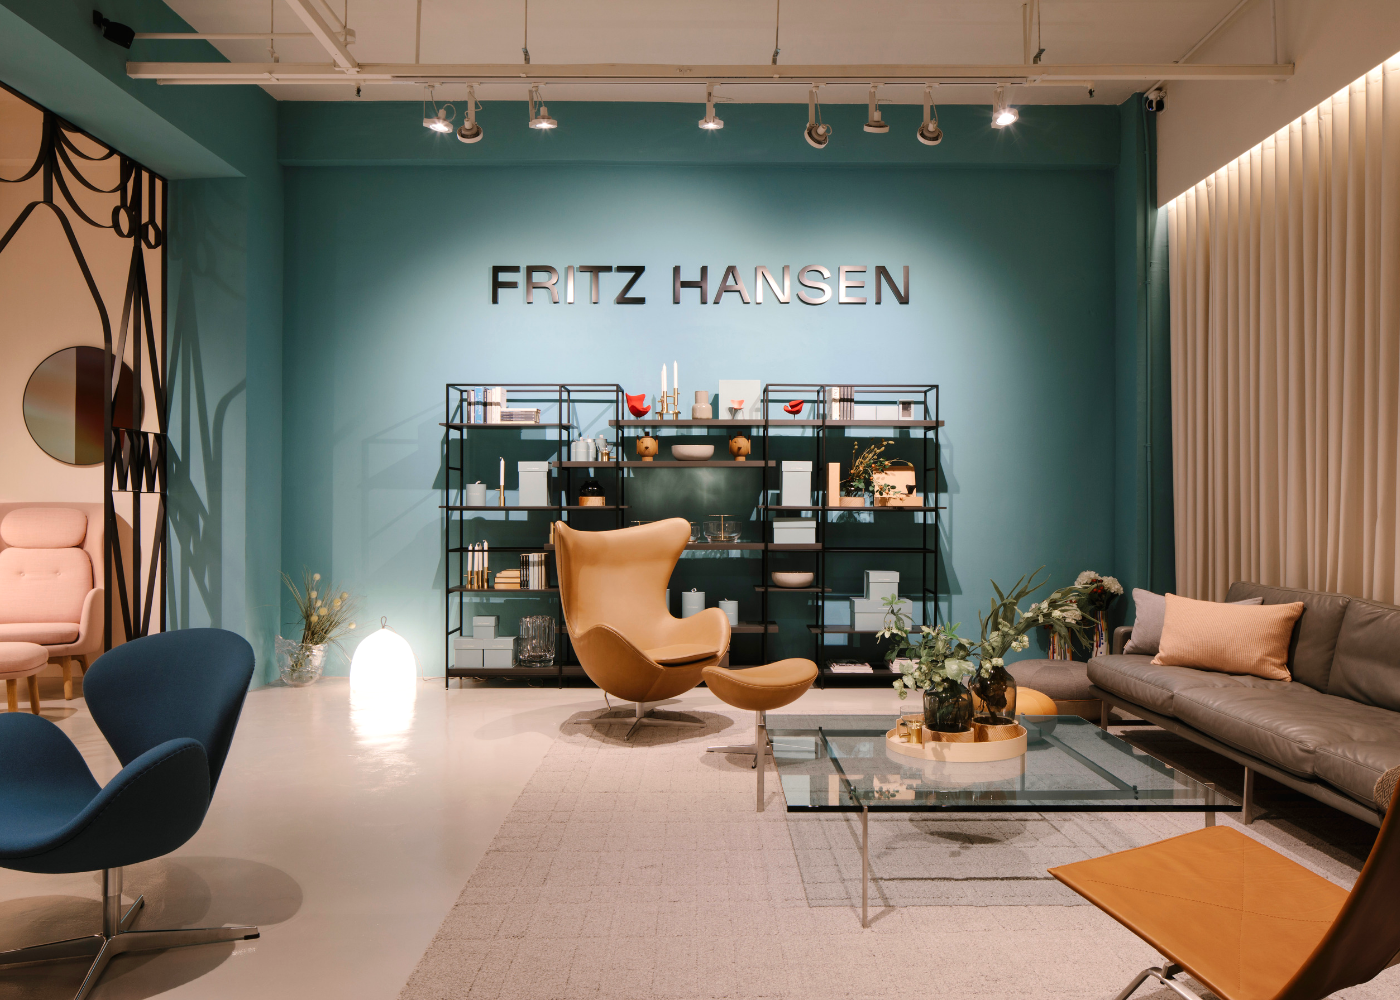 Welcome to our new (dream) crib: The Fritz Hansen Lounge is here thanks to W Atelier